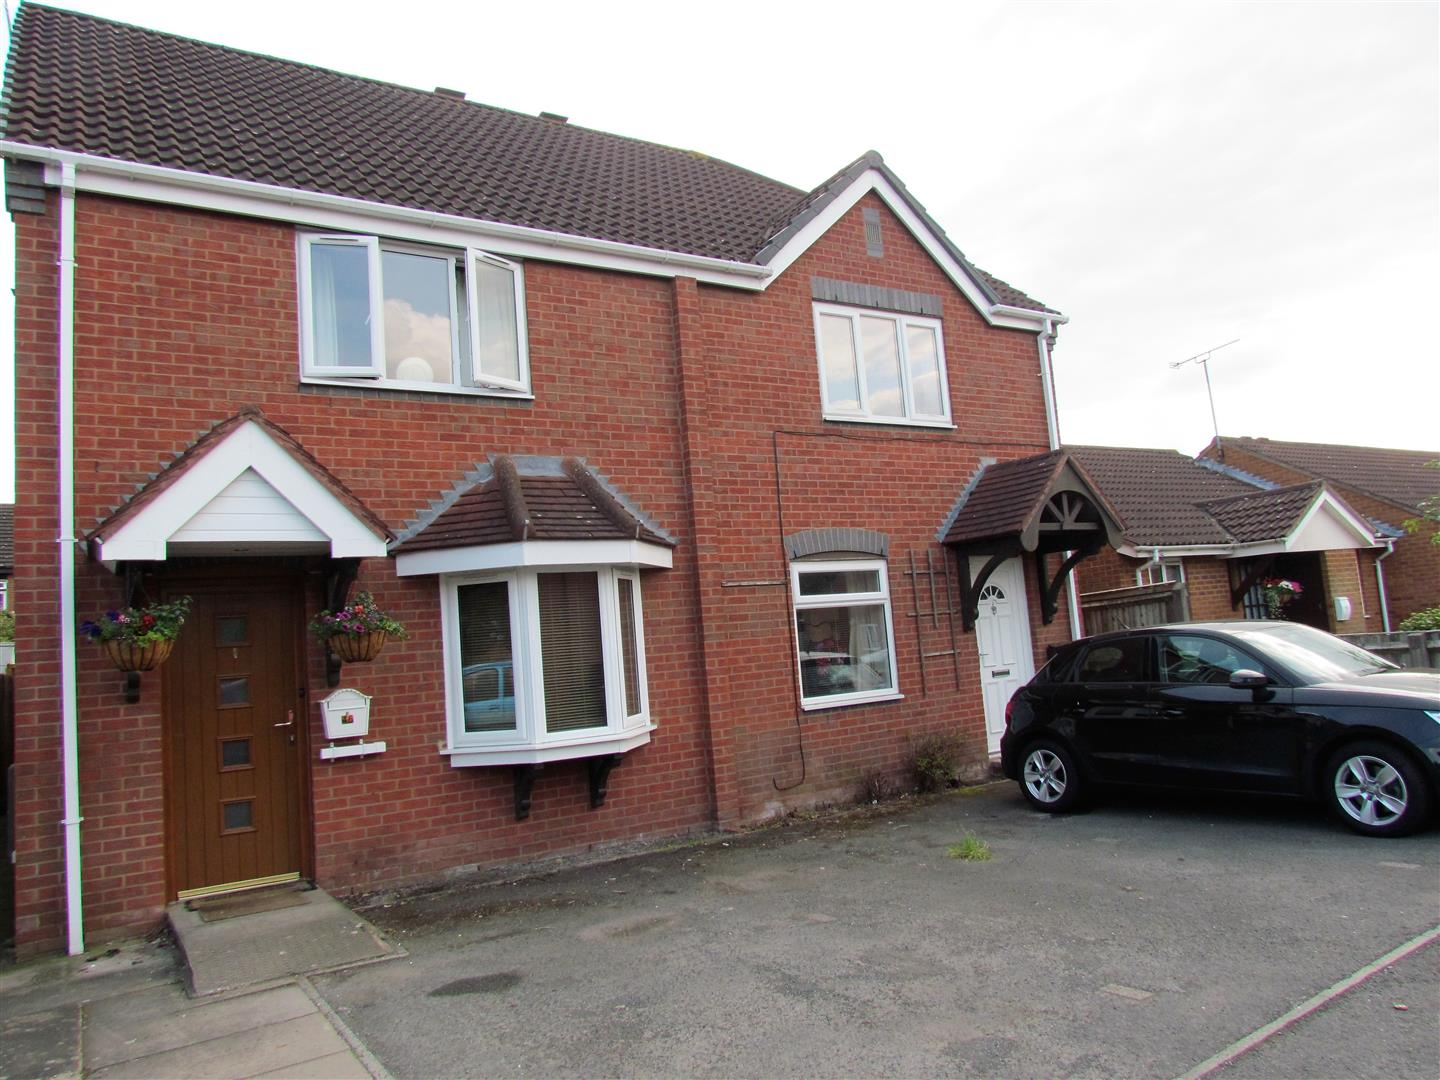 2 Bedrooms Property for sale in Wensleydale Drive, Worcester